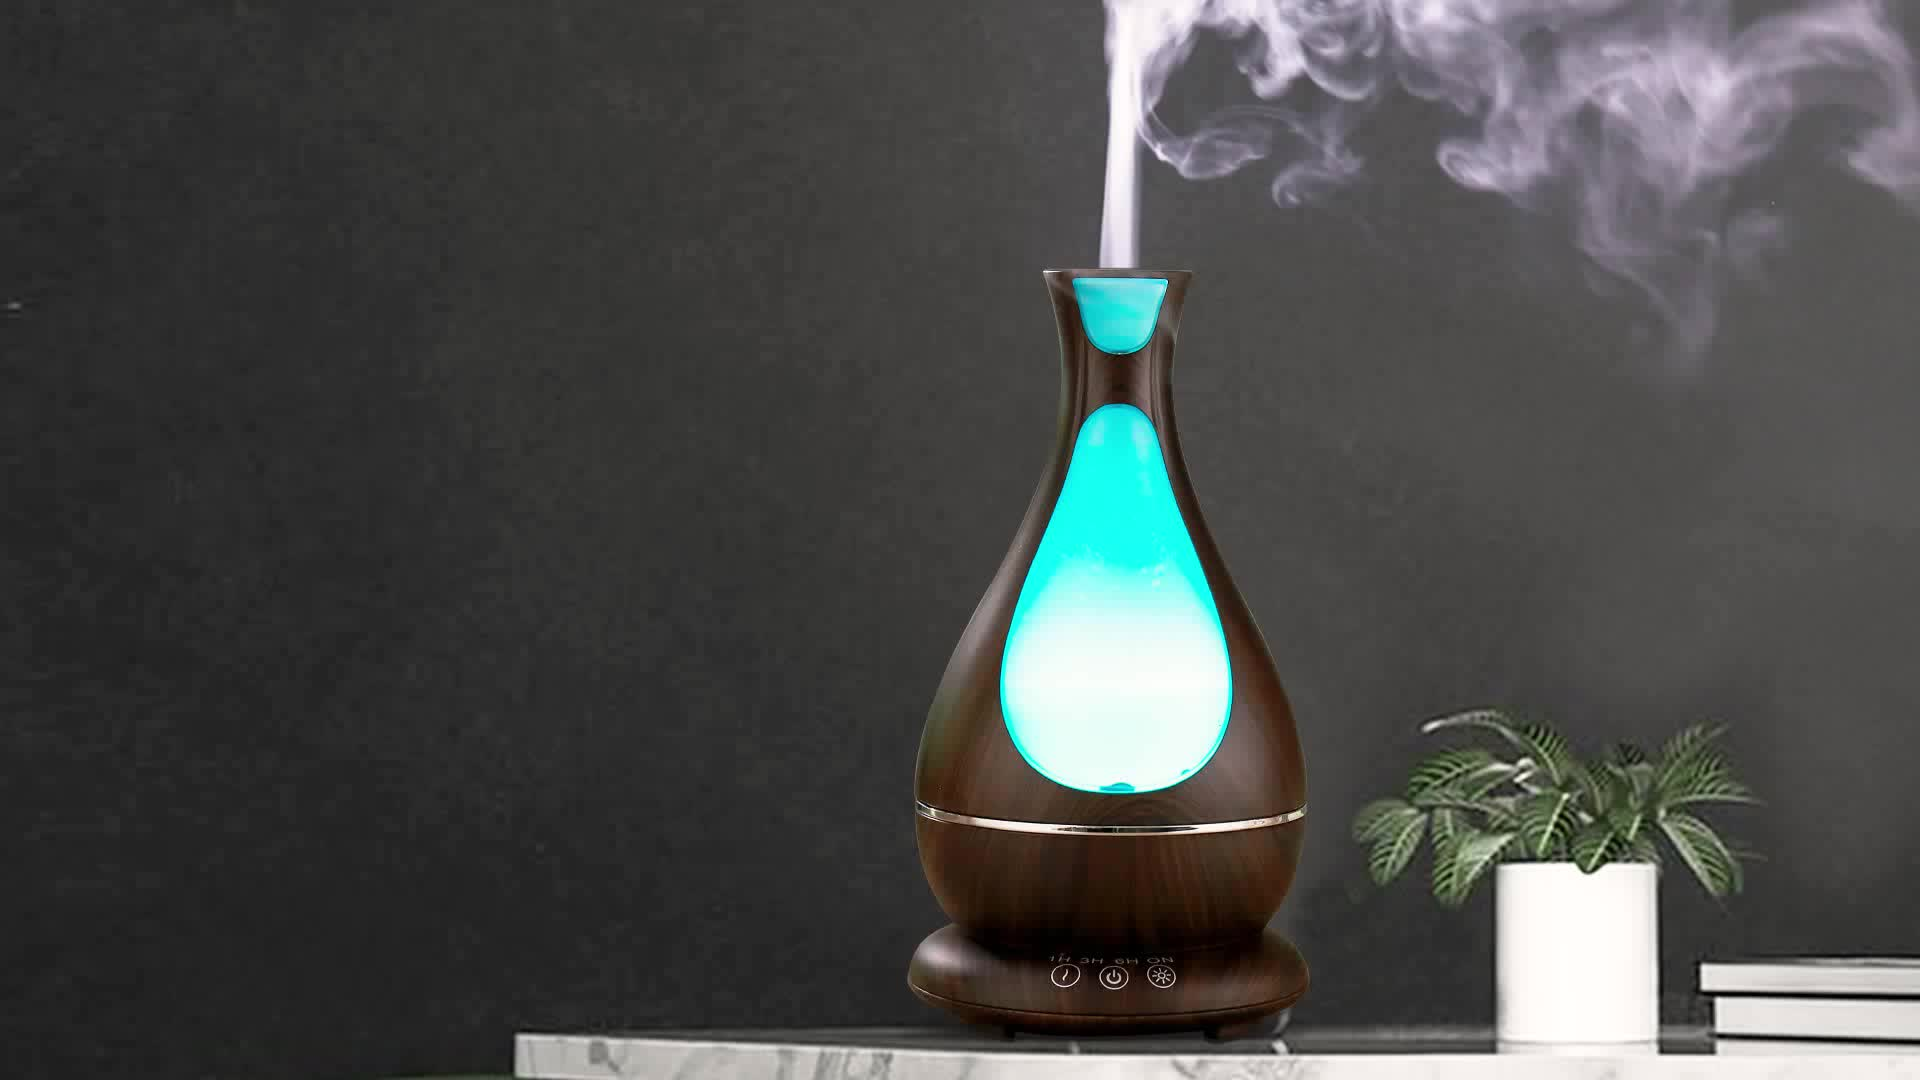 Hygea 2019 Trending Products Ultrasonic Aromatherapy Essential Oil Diffuser